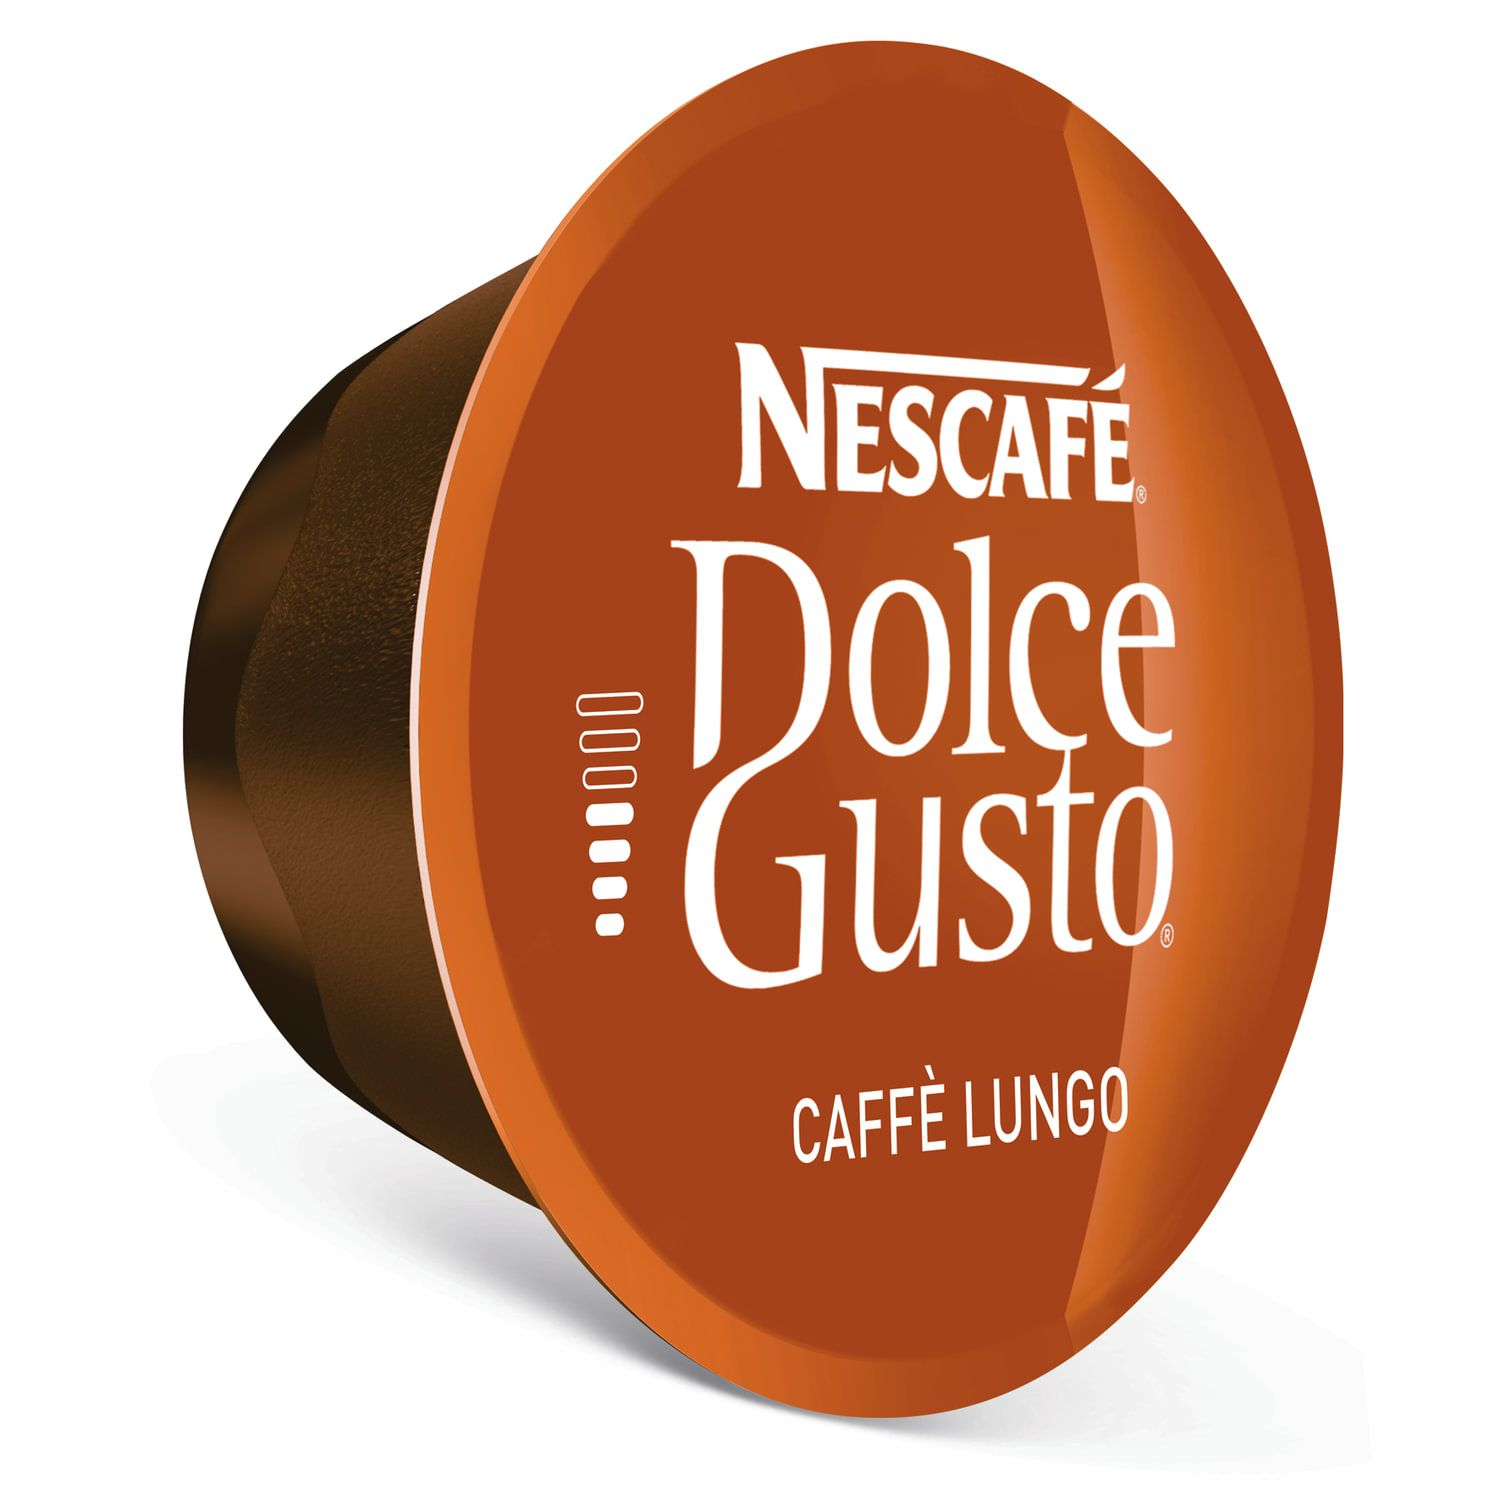 NESCAFE / Capsules for Dolce Gusto Lungo coffee machines, natural coffee 16 pcs. x 7 g